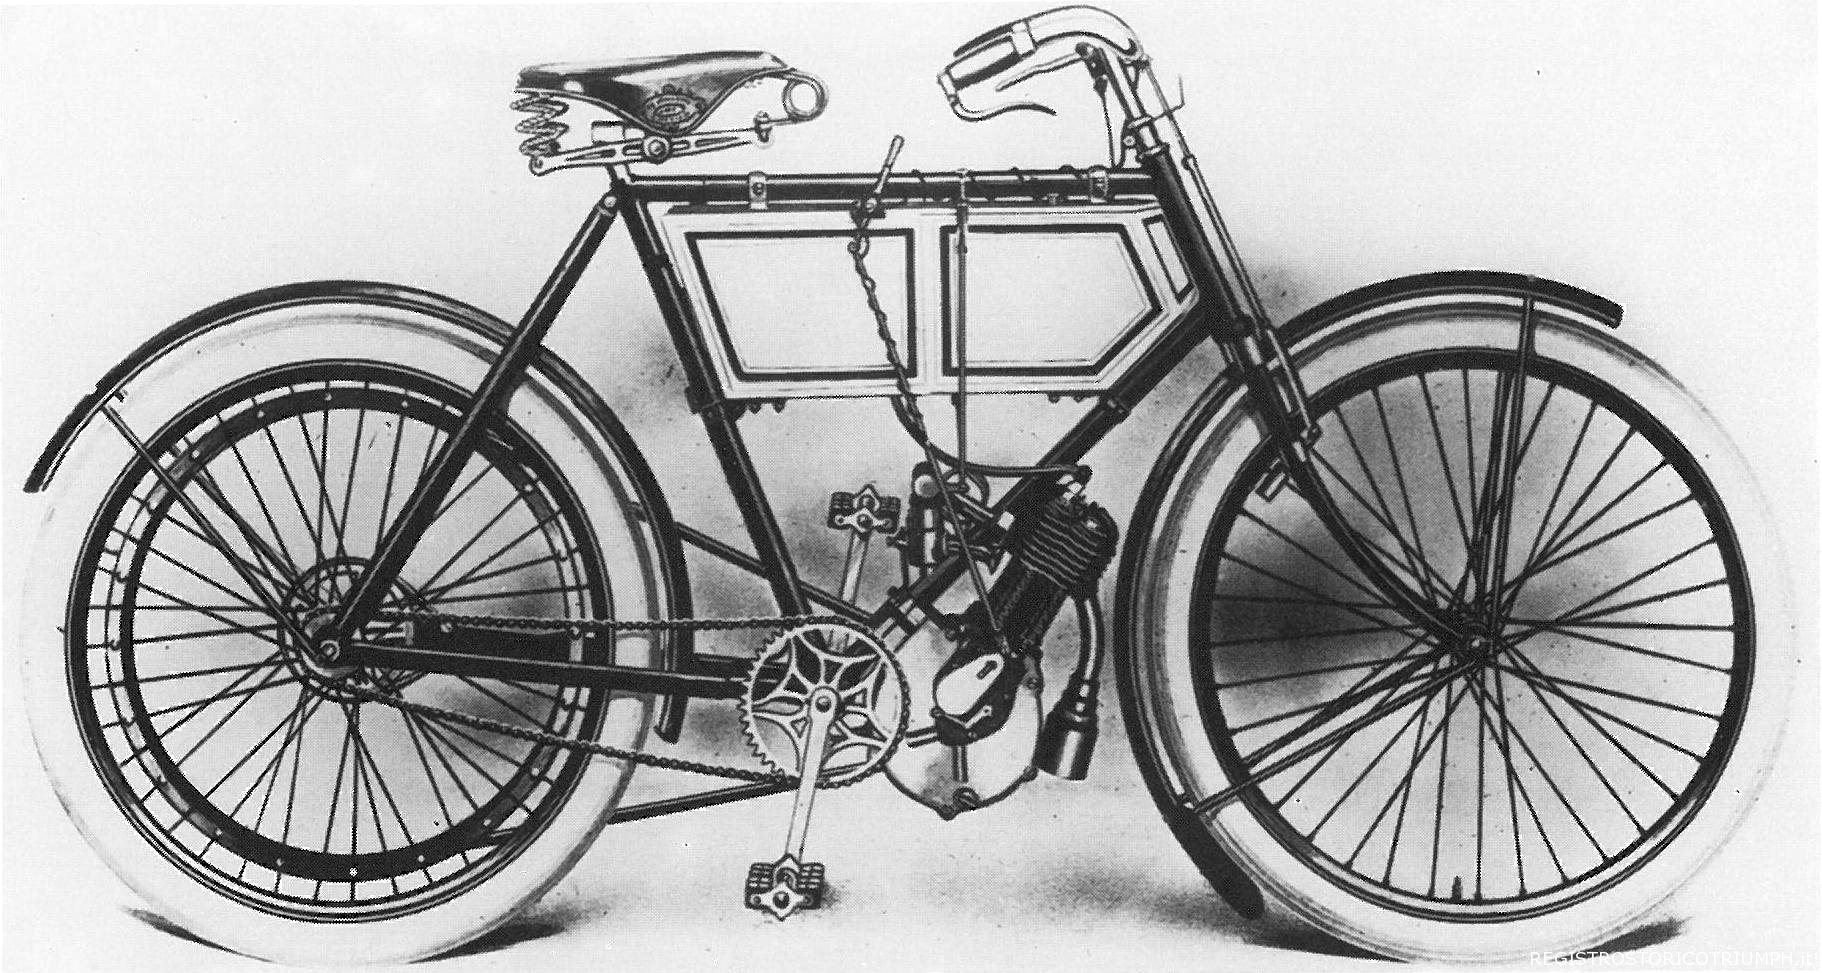 The very first Triumph motorcycle, with its Minerva engine, making a whole 2hp.